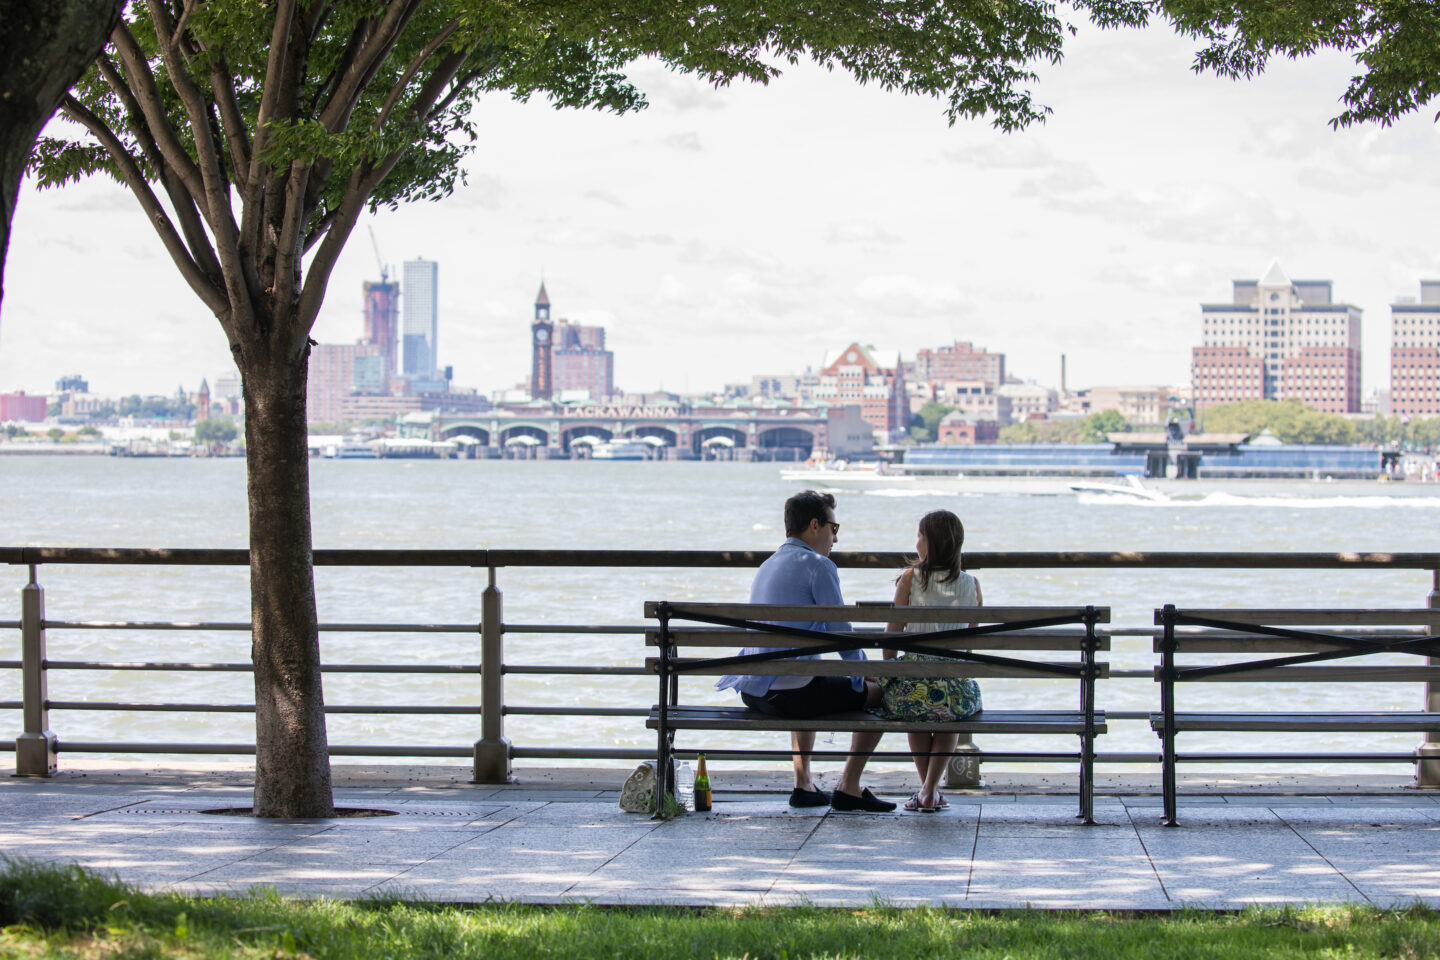 Two park visitors sit on a bench looking out to the hudson river